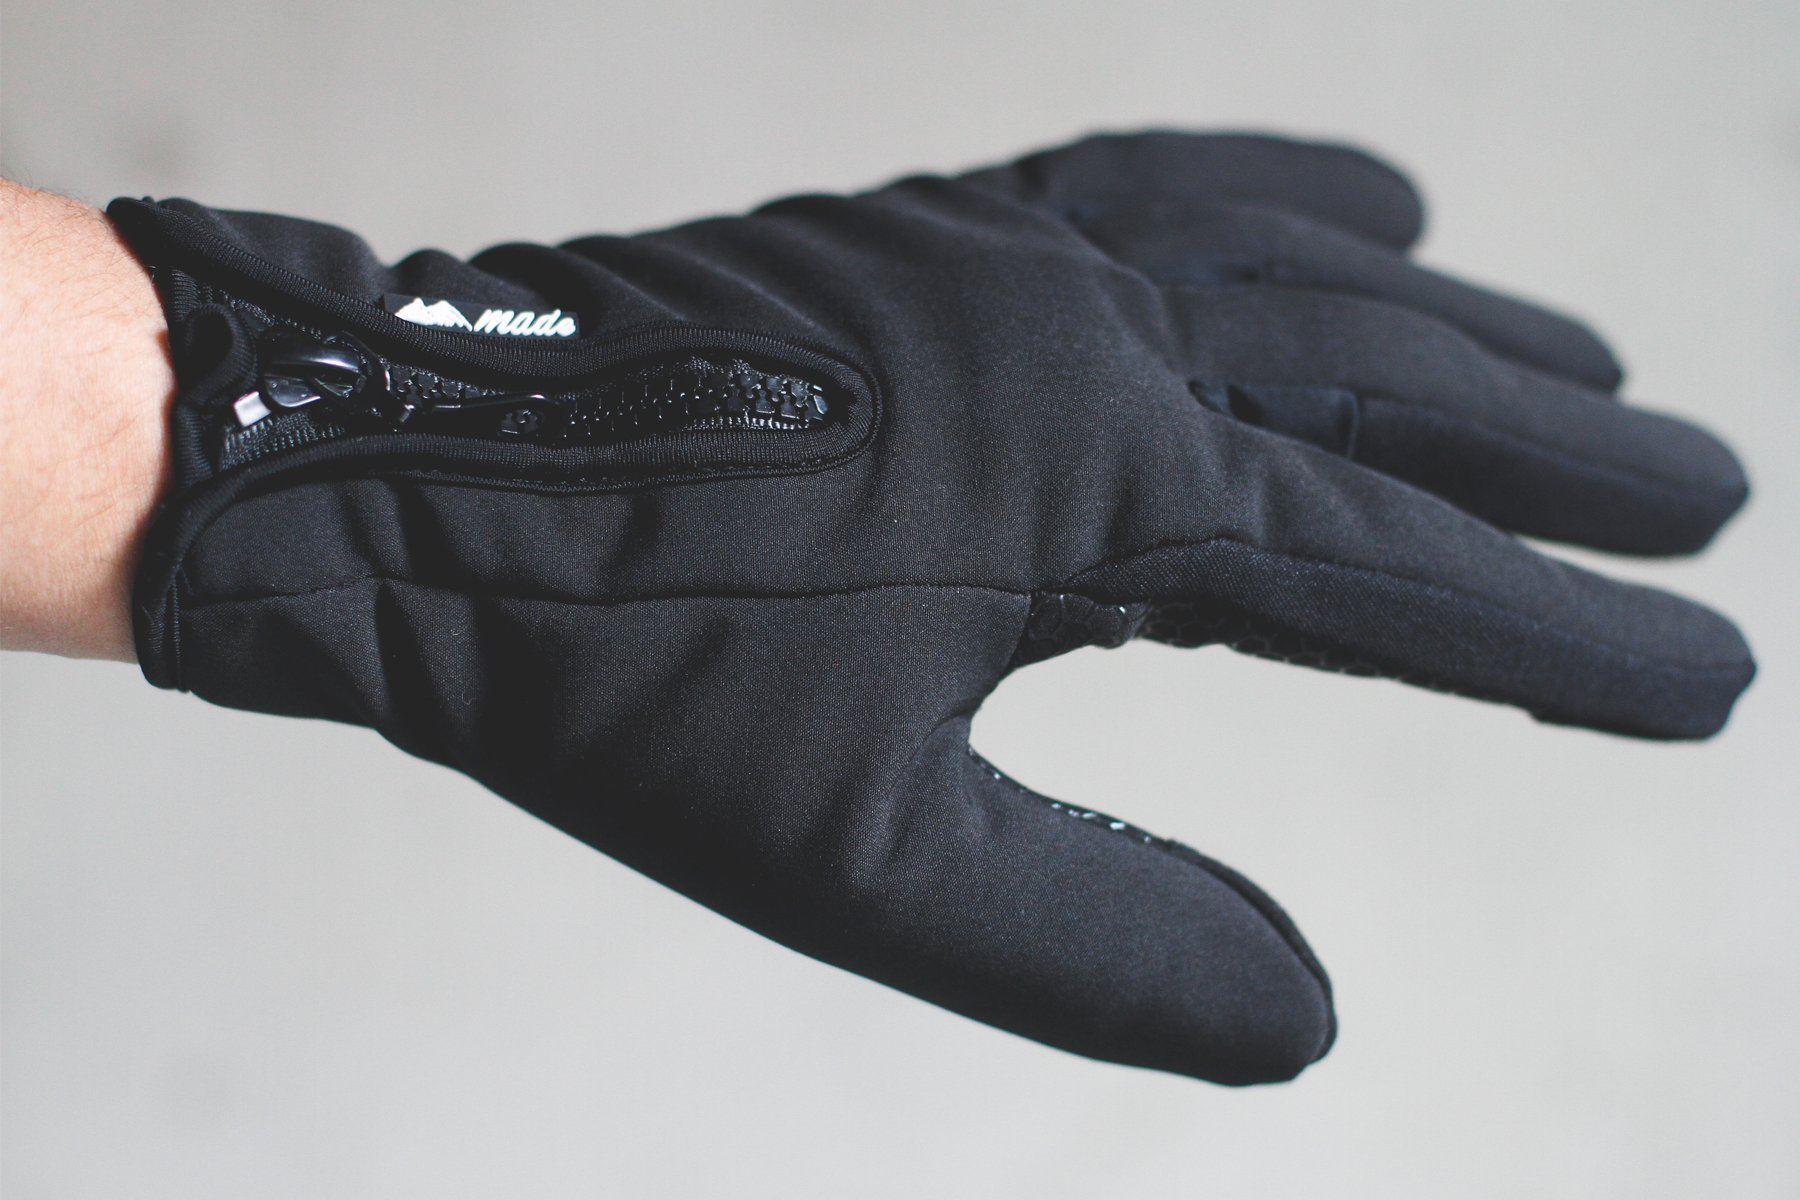 Mountain Made Cold Weather Gloves for Men and Women 2.0 with NEW UPGRADED ZIPPPERS,black,large by Mountain Made (Image #5)